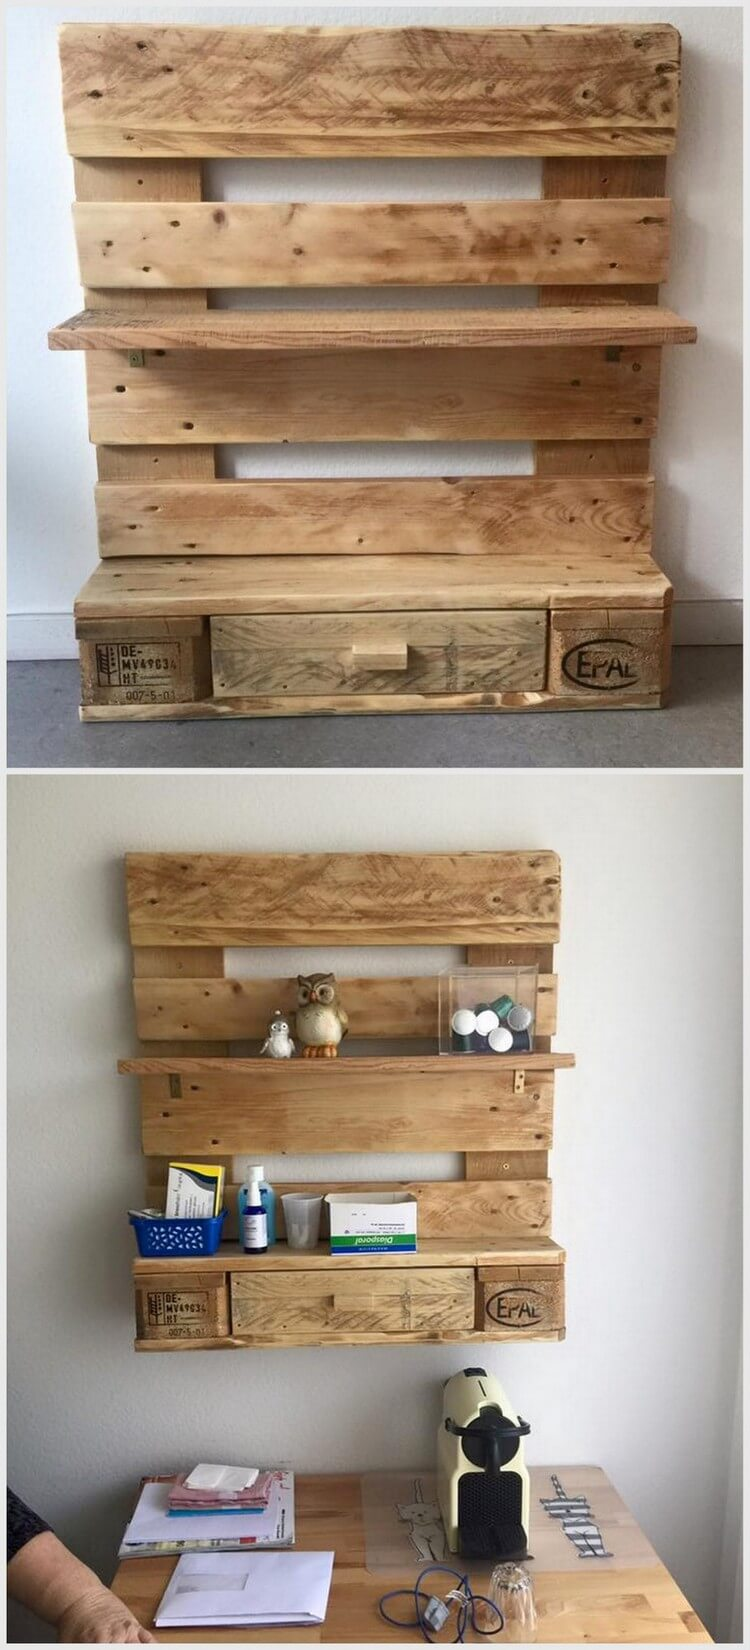 Wonderful creations made with reused wood pallets pallet for What can you make with recycled pallets